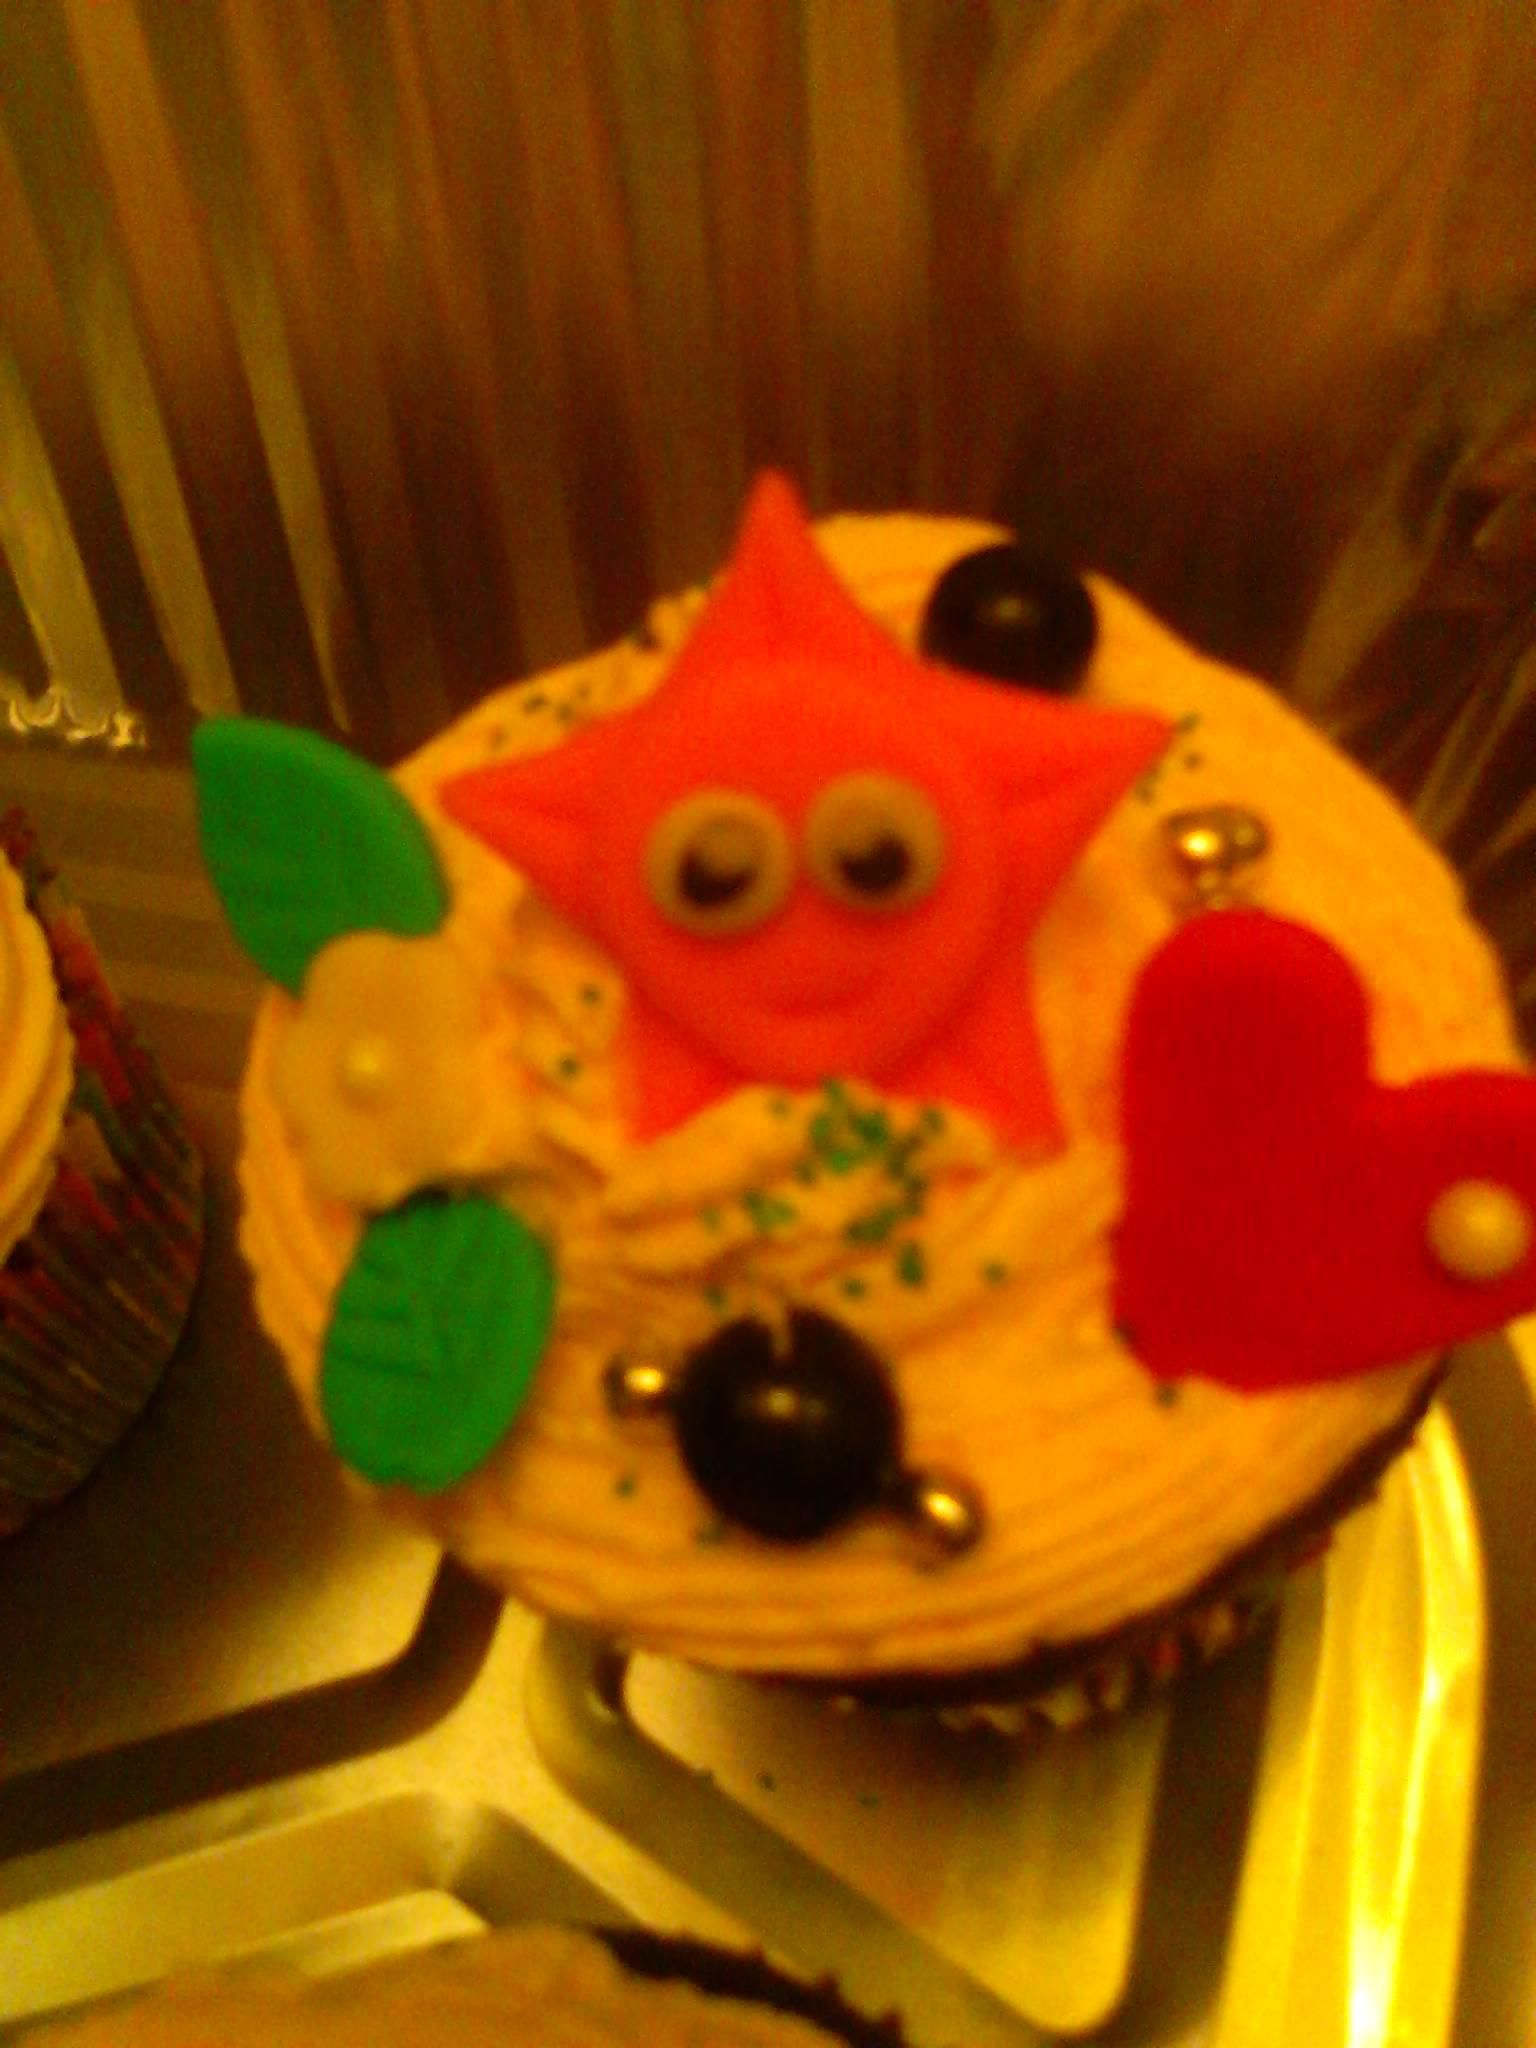 Star from Dora the explora cupcake and fondant characters